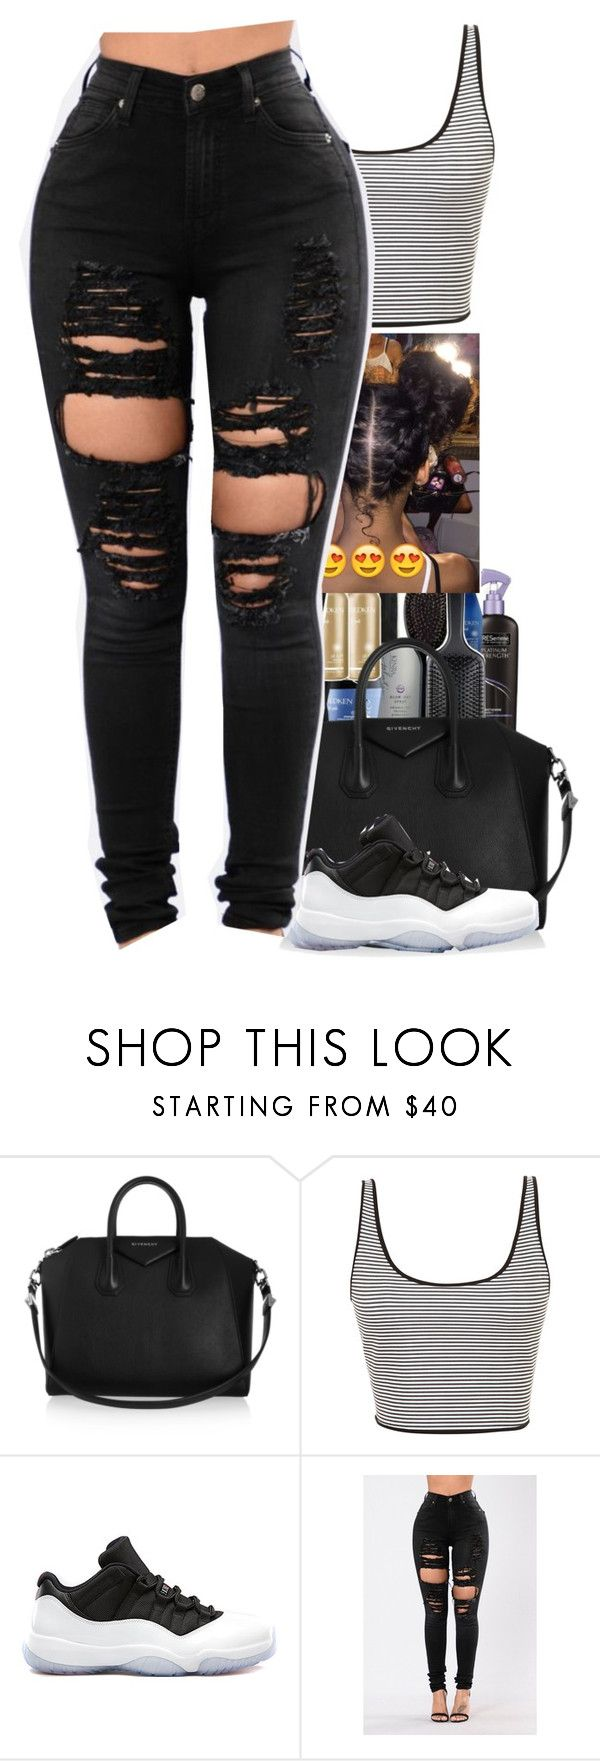 """💙 black doll 💙"" by itstonyee ❤ liked on Polyvore featuring Givenchy and Clover Canyon"